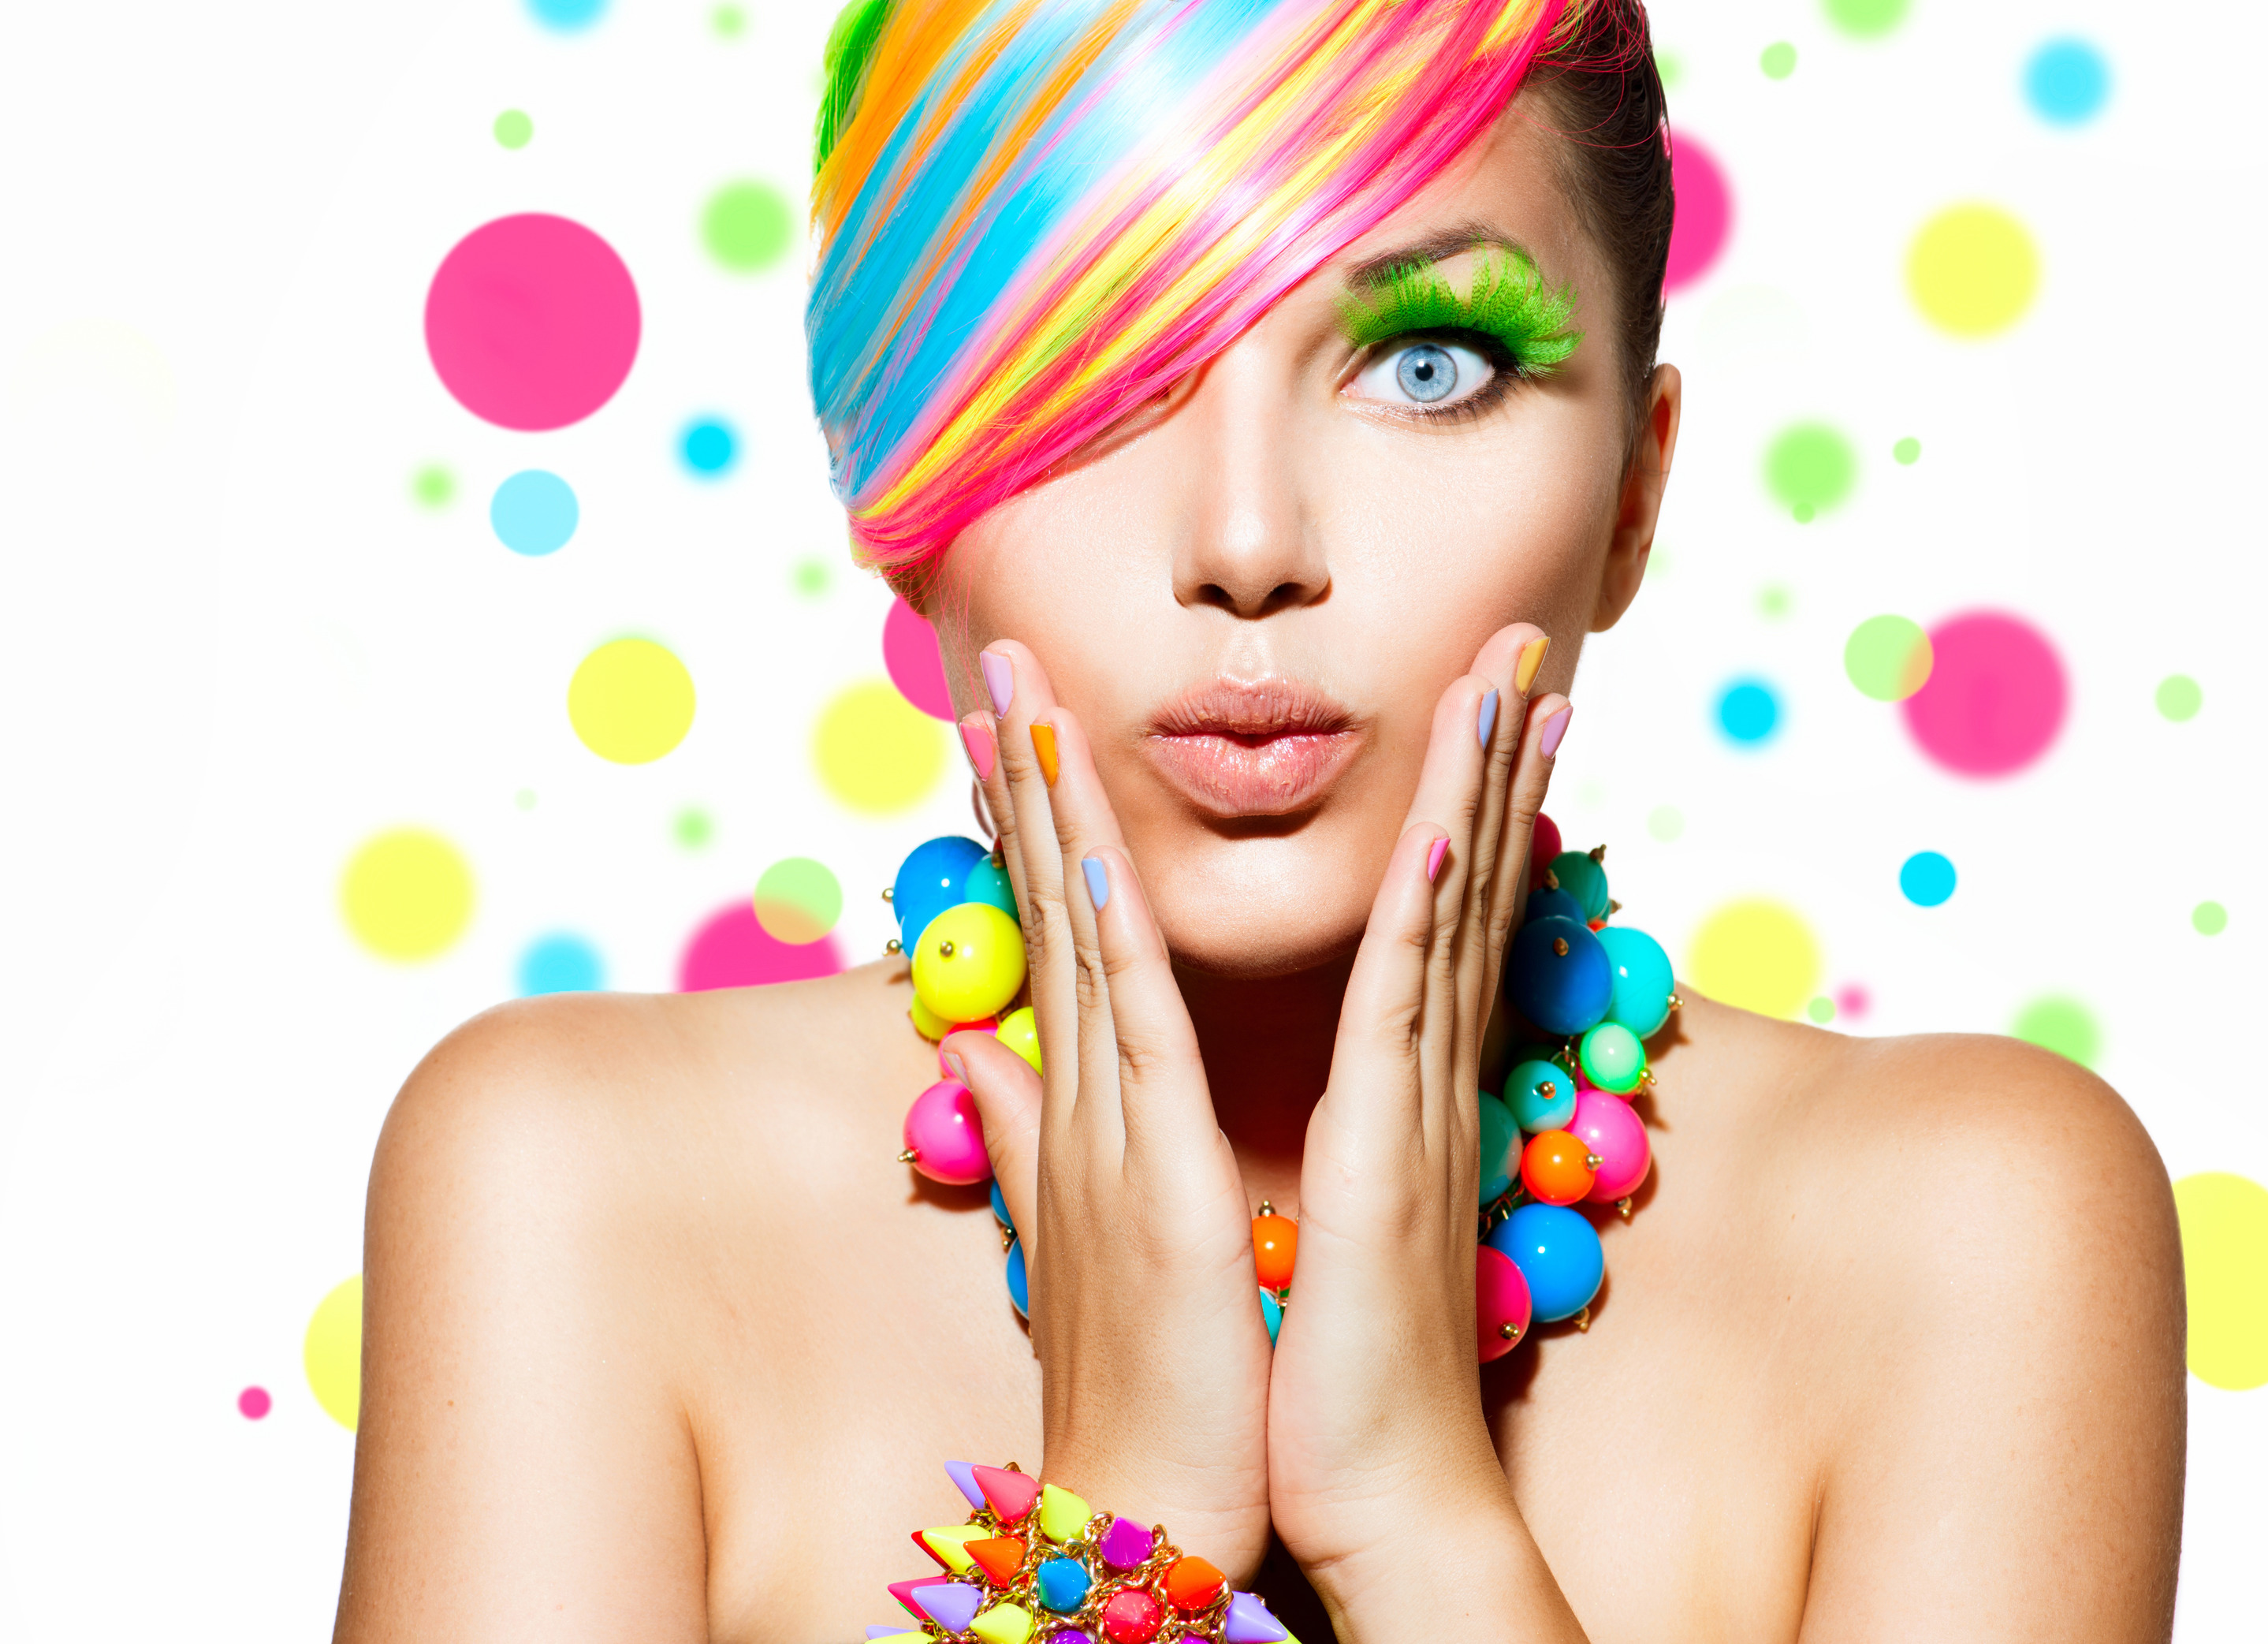 Beauty Girl Portrait With Colorful Makeup Hair And